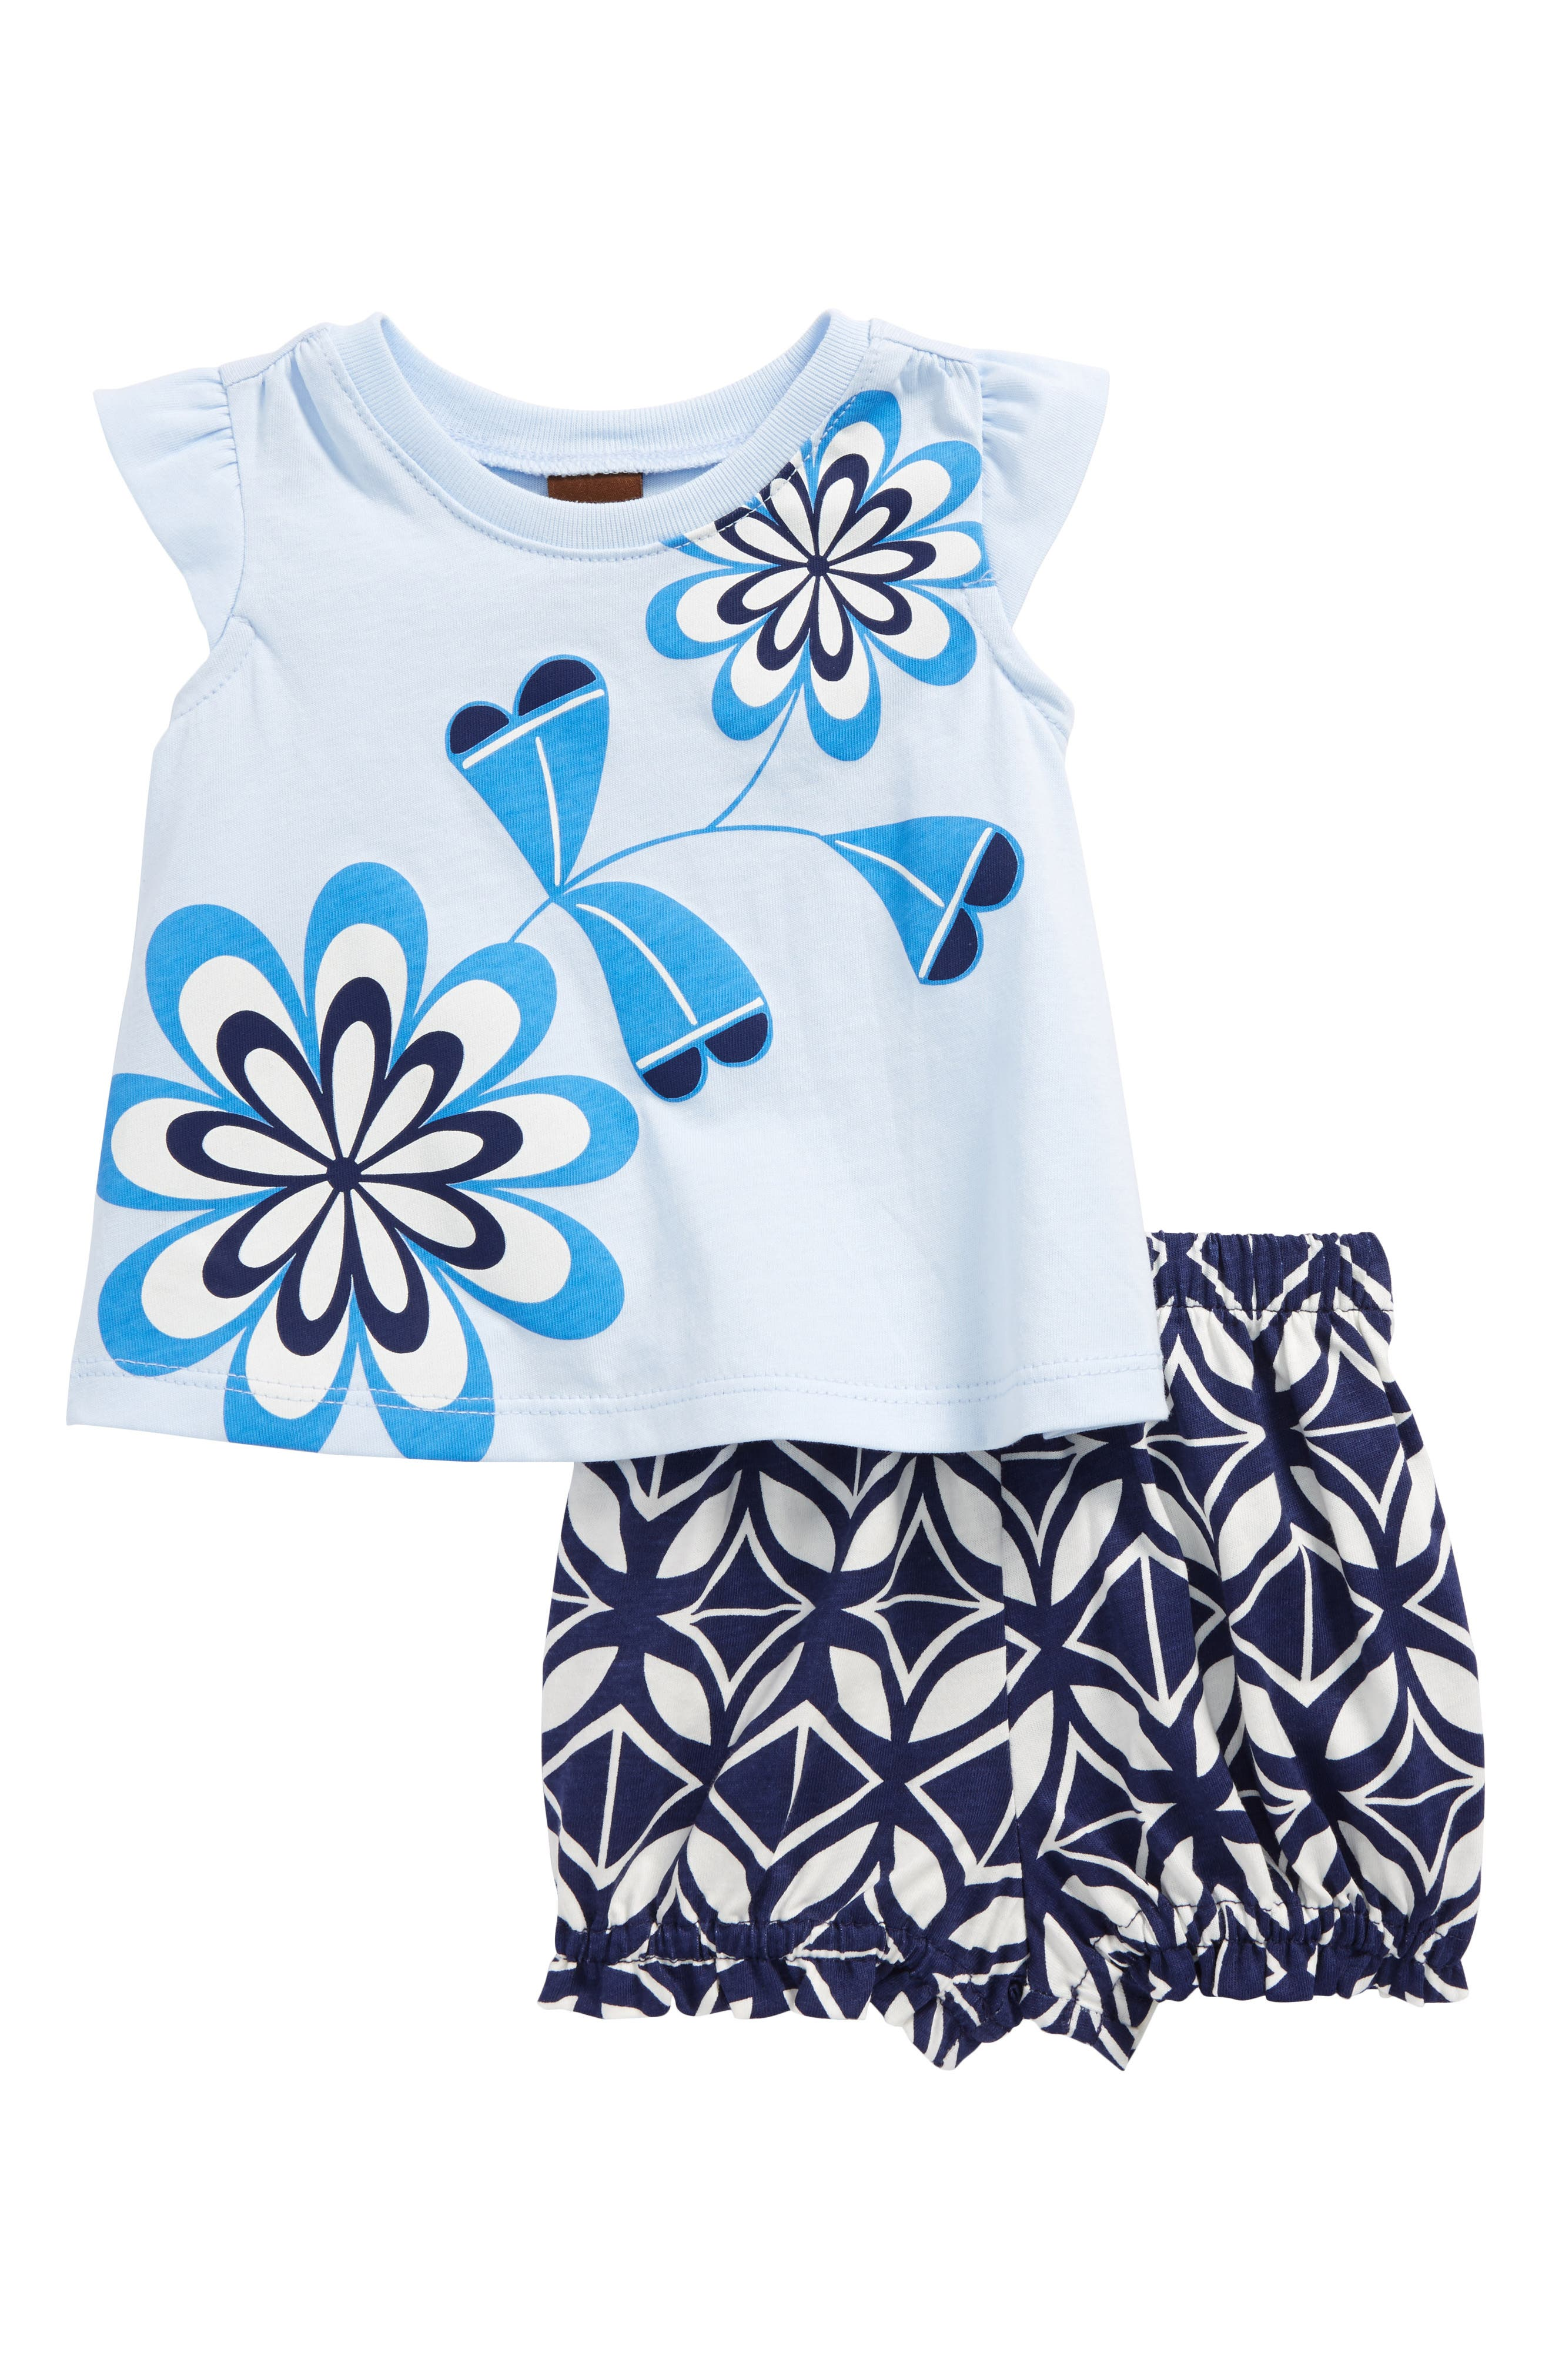 Tea Collection Blooming Florals Tee & Shorts Set (Baby Girls)